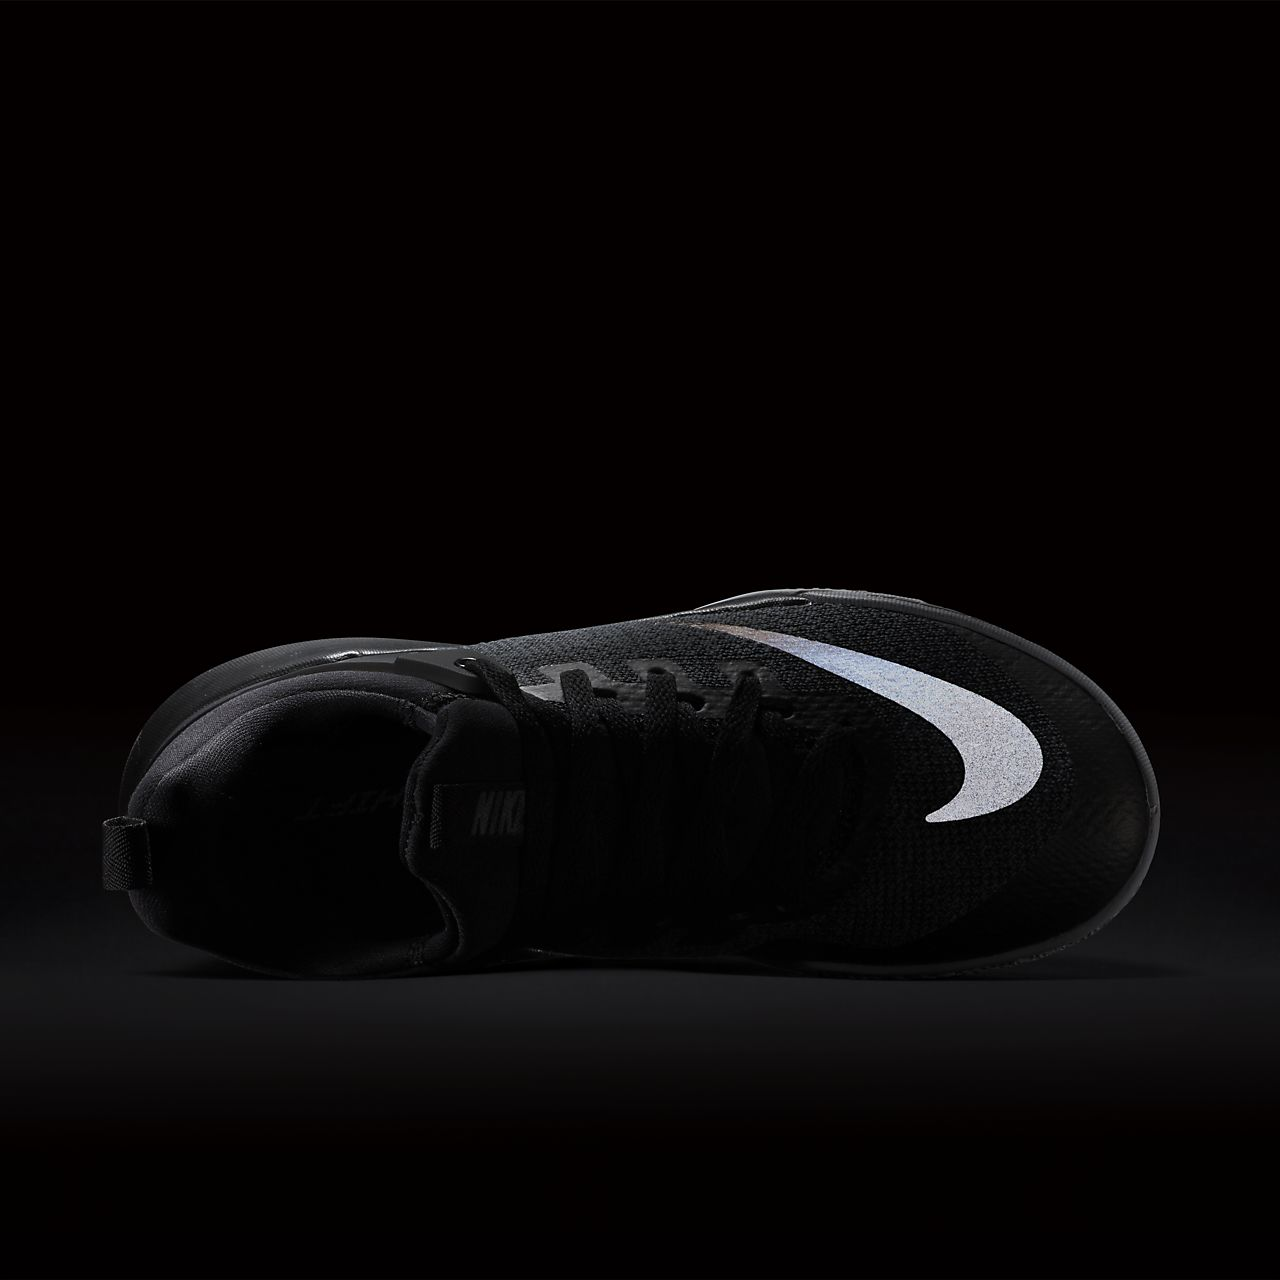 bd62251853a3 Nike Zoom Shift Women s Basketball Shoe. Nike.com IE